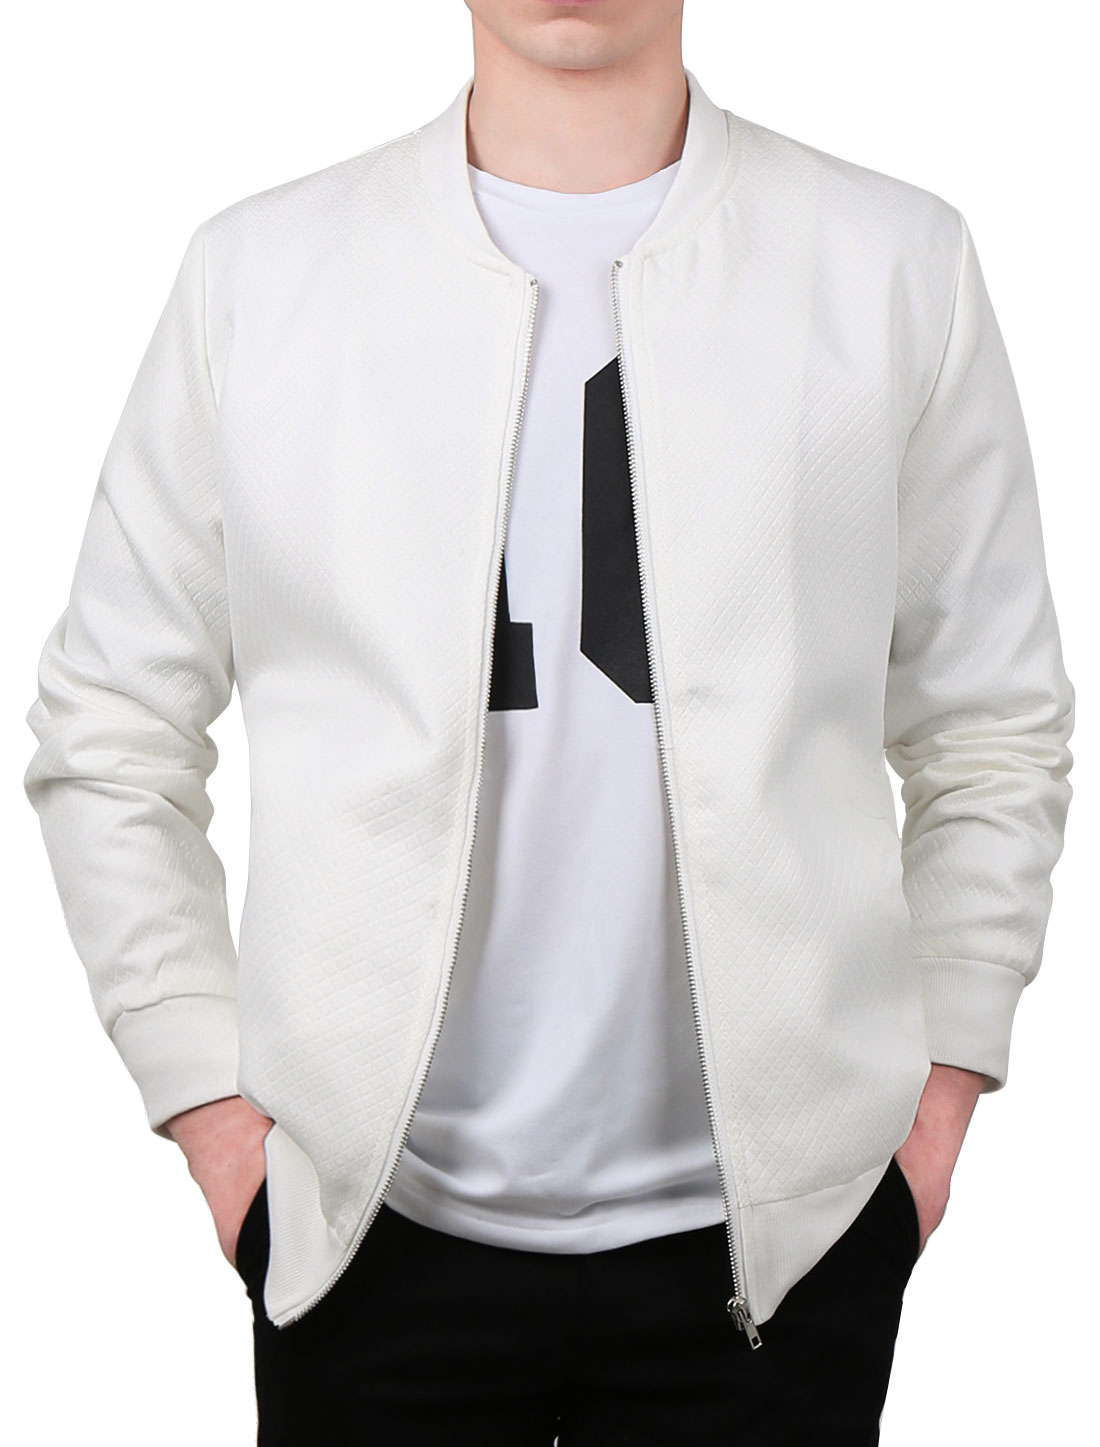 Men Argyle Design Stand Collar Zippered Jacket White L